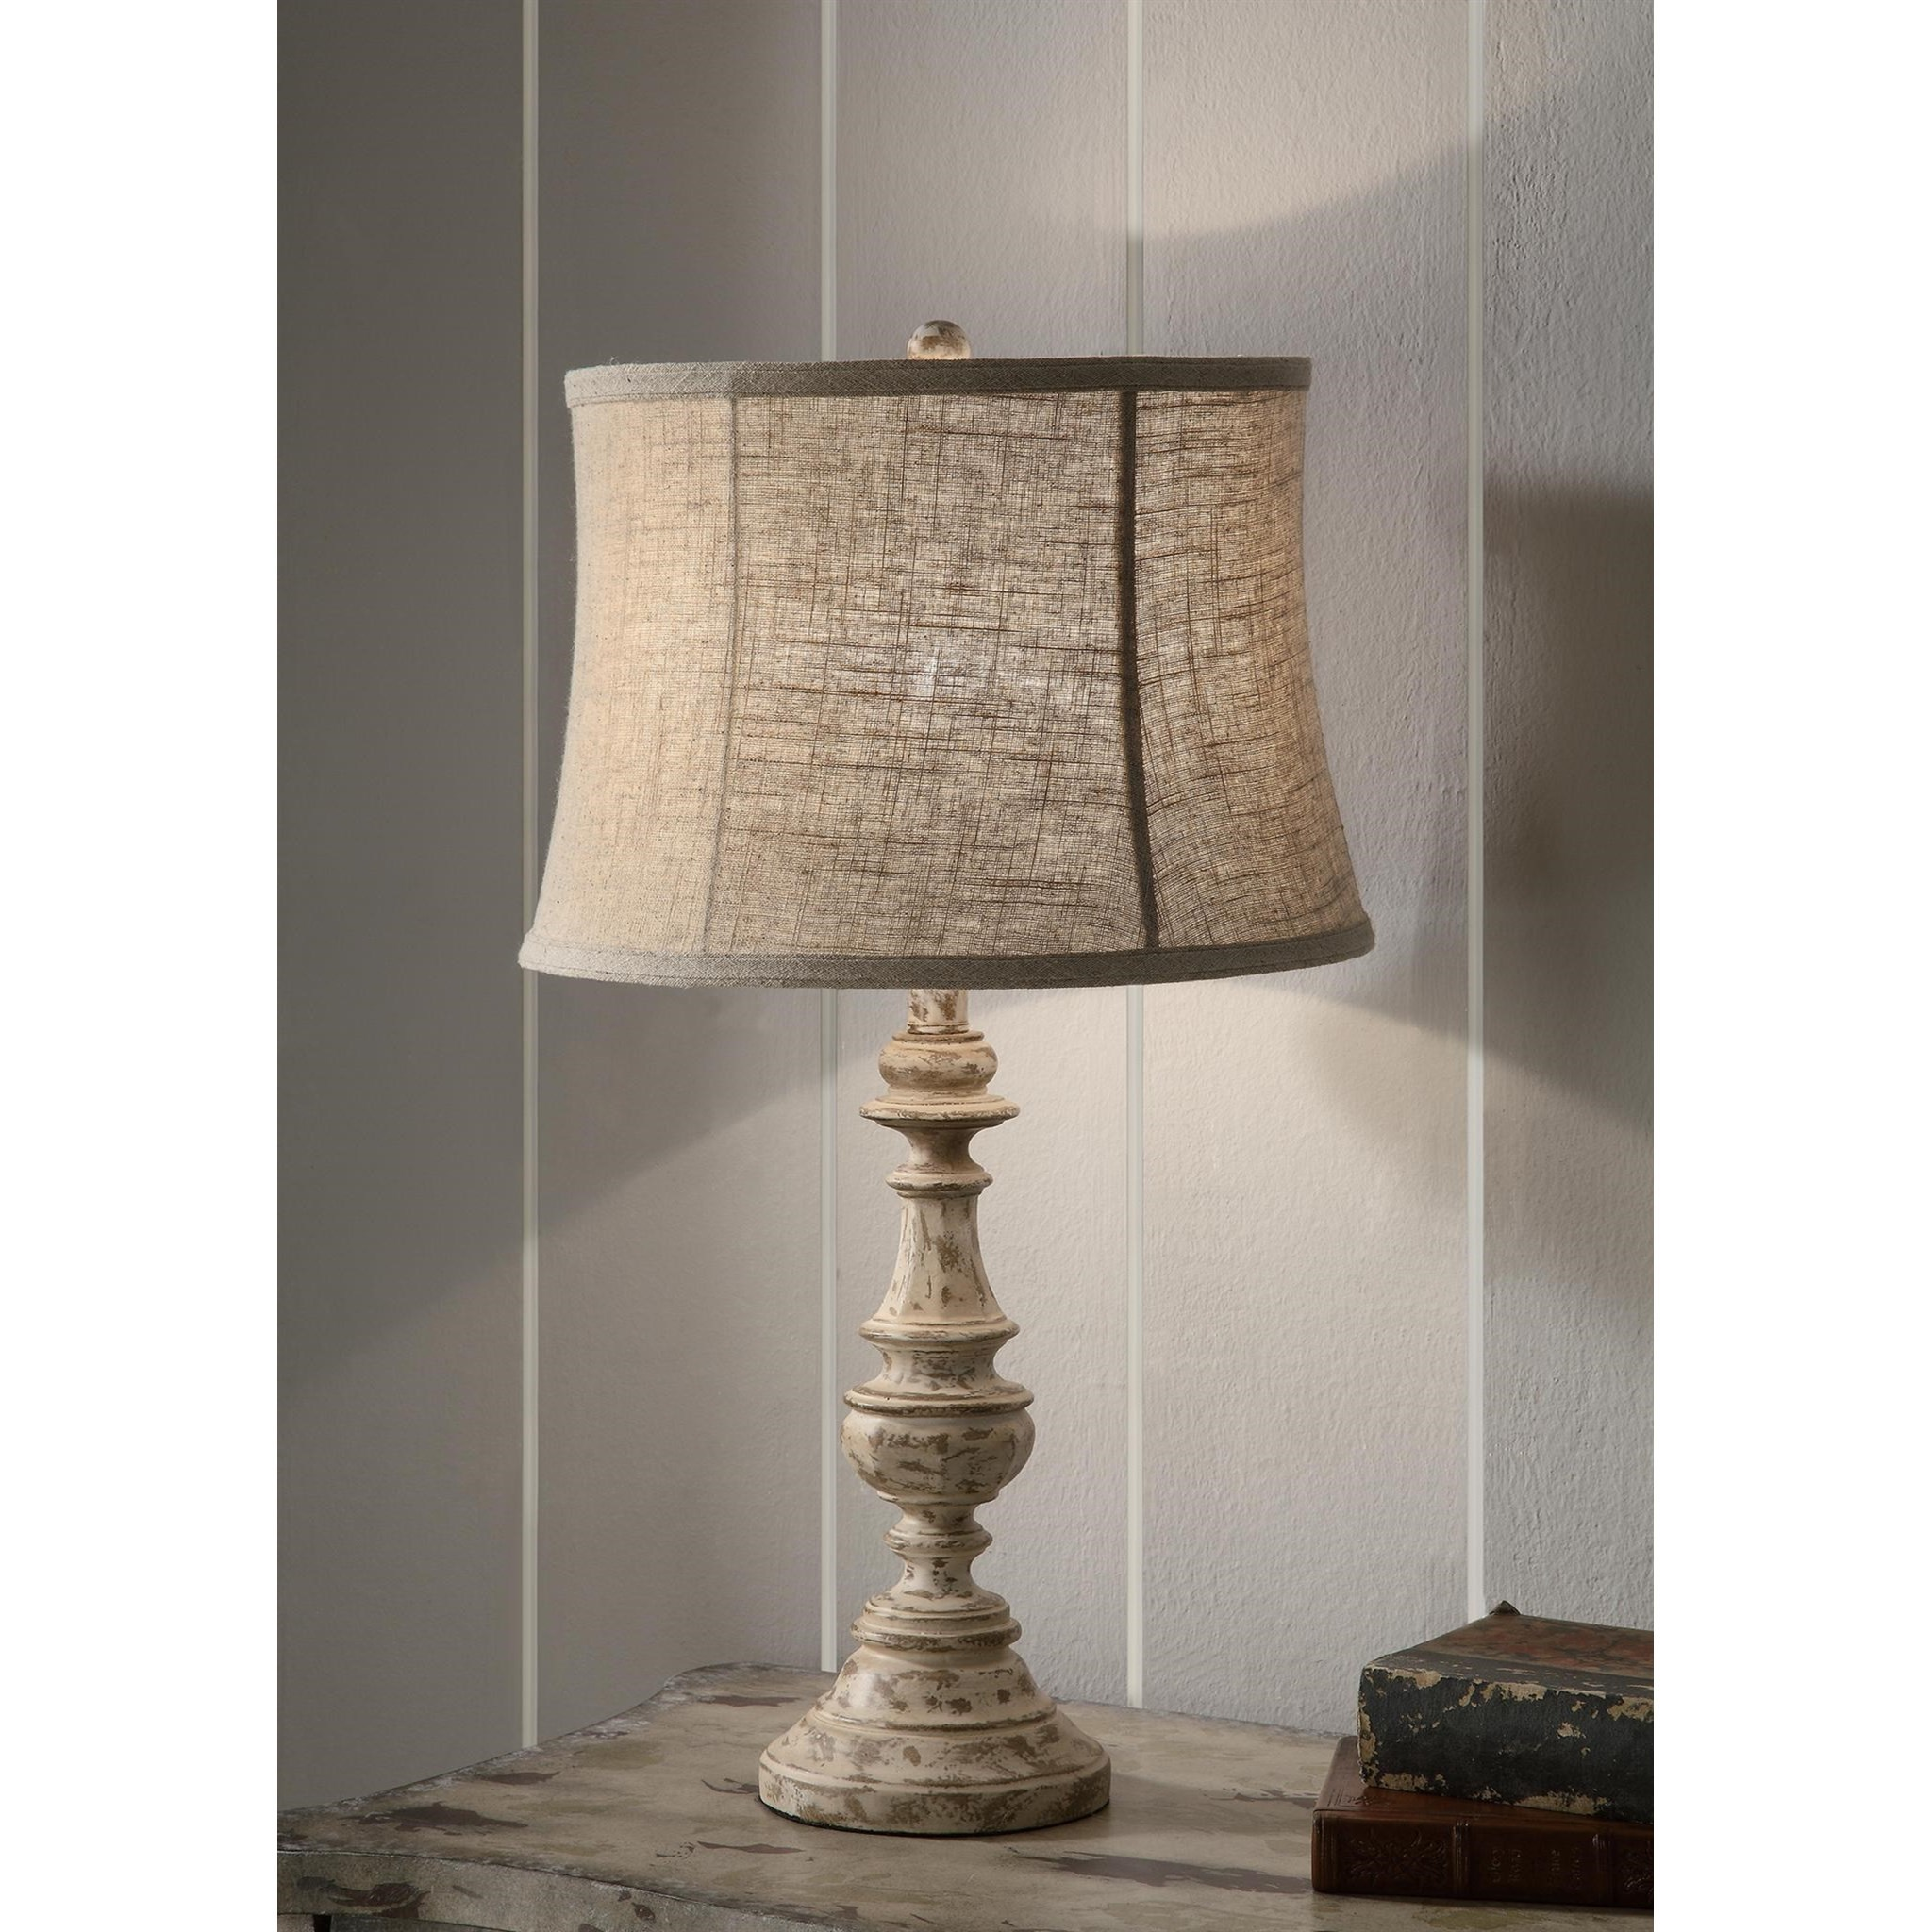 """Lighting Cunningham Table Lamp 24.5""""Ht. by Crestview Collection at Rife's Home Furniture"""